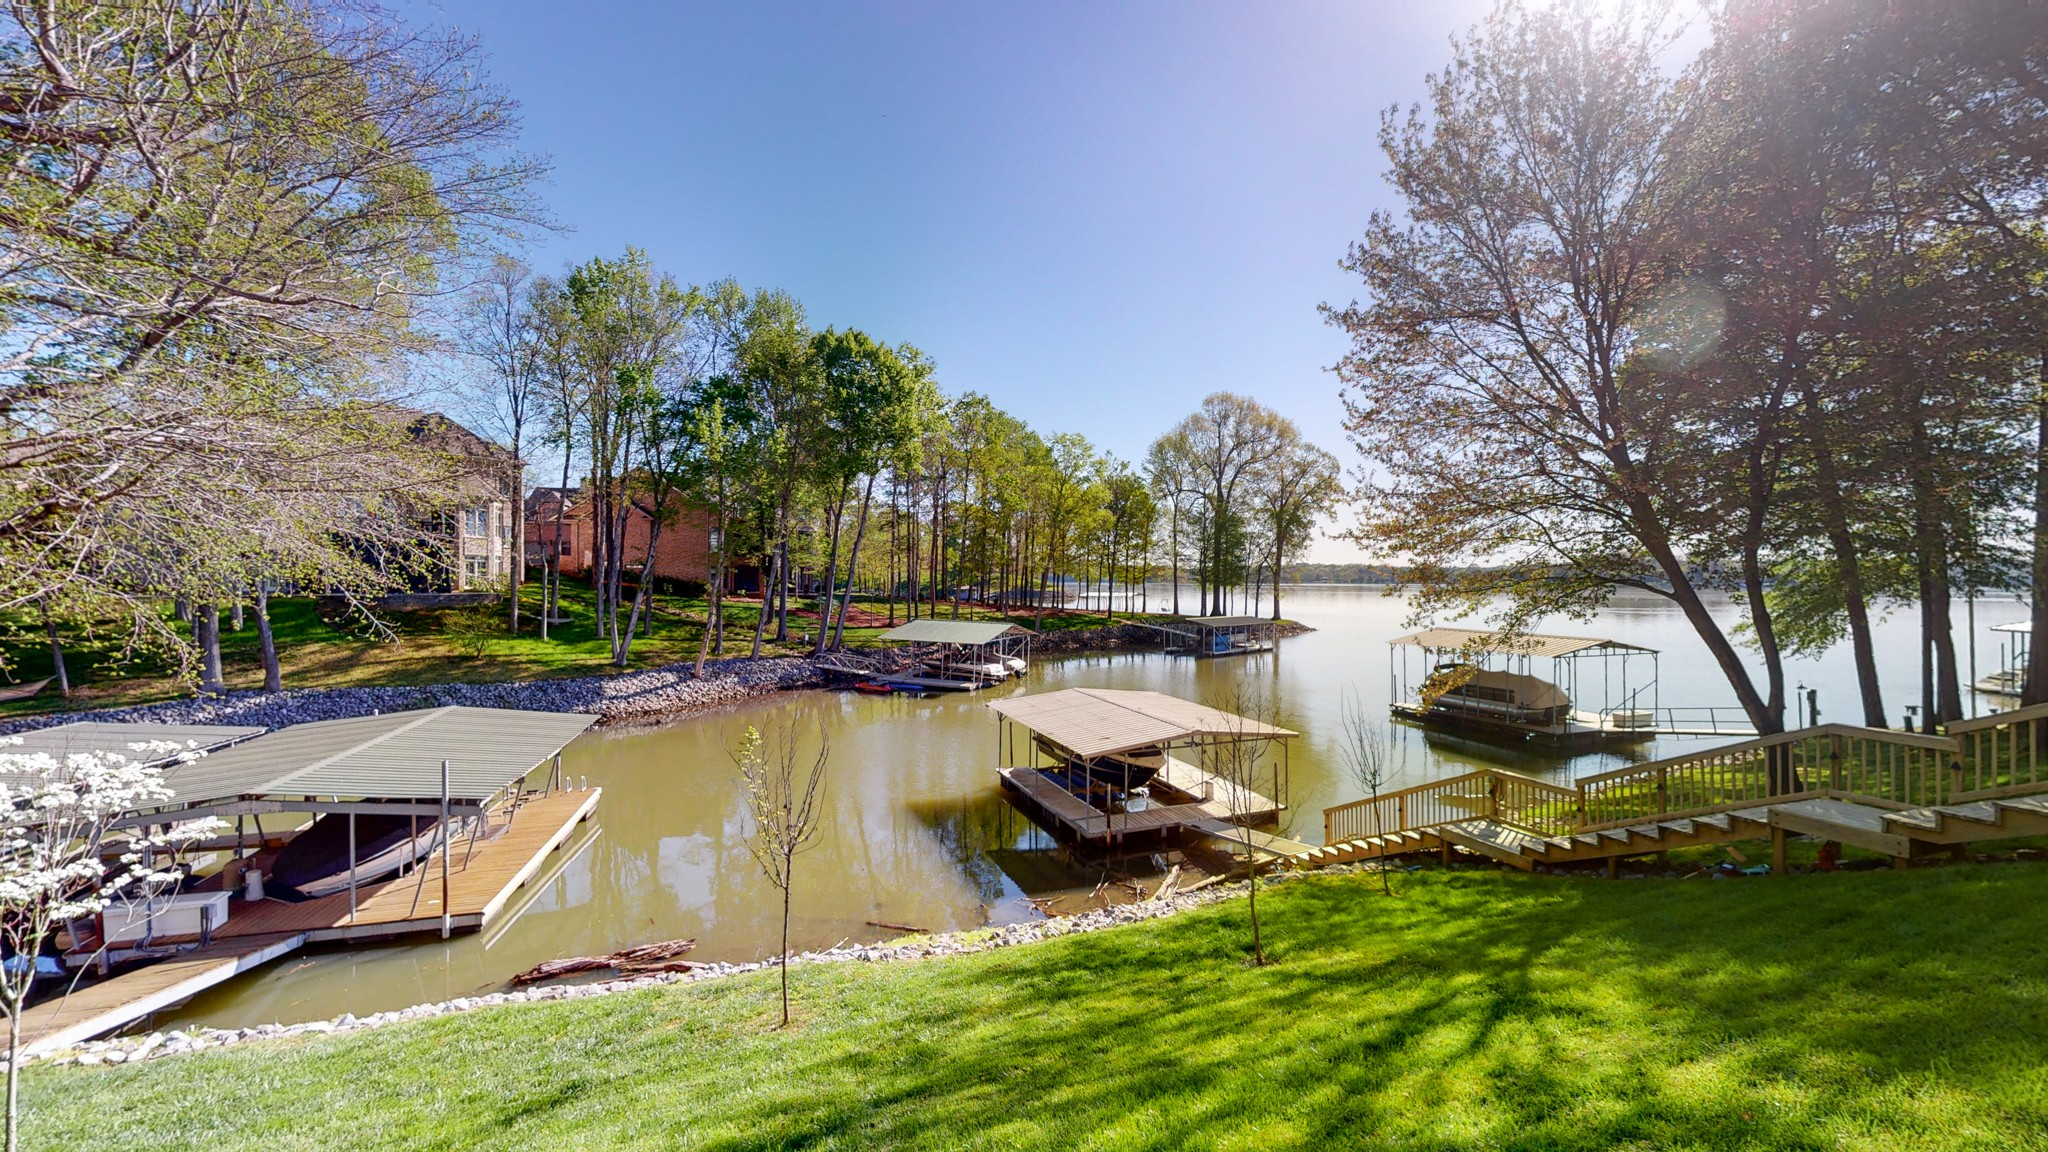 Unbelievable views from your new home on the lake. Highly coveted private boathouse on Old Hickory Lake, over 5,000 sqft of living space, fireplaces, finished basement, Florida room, and panoramic lake views from much of the house. 6,600 lb HydroHoist lift.